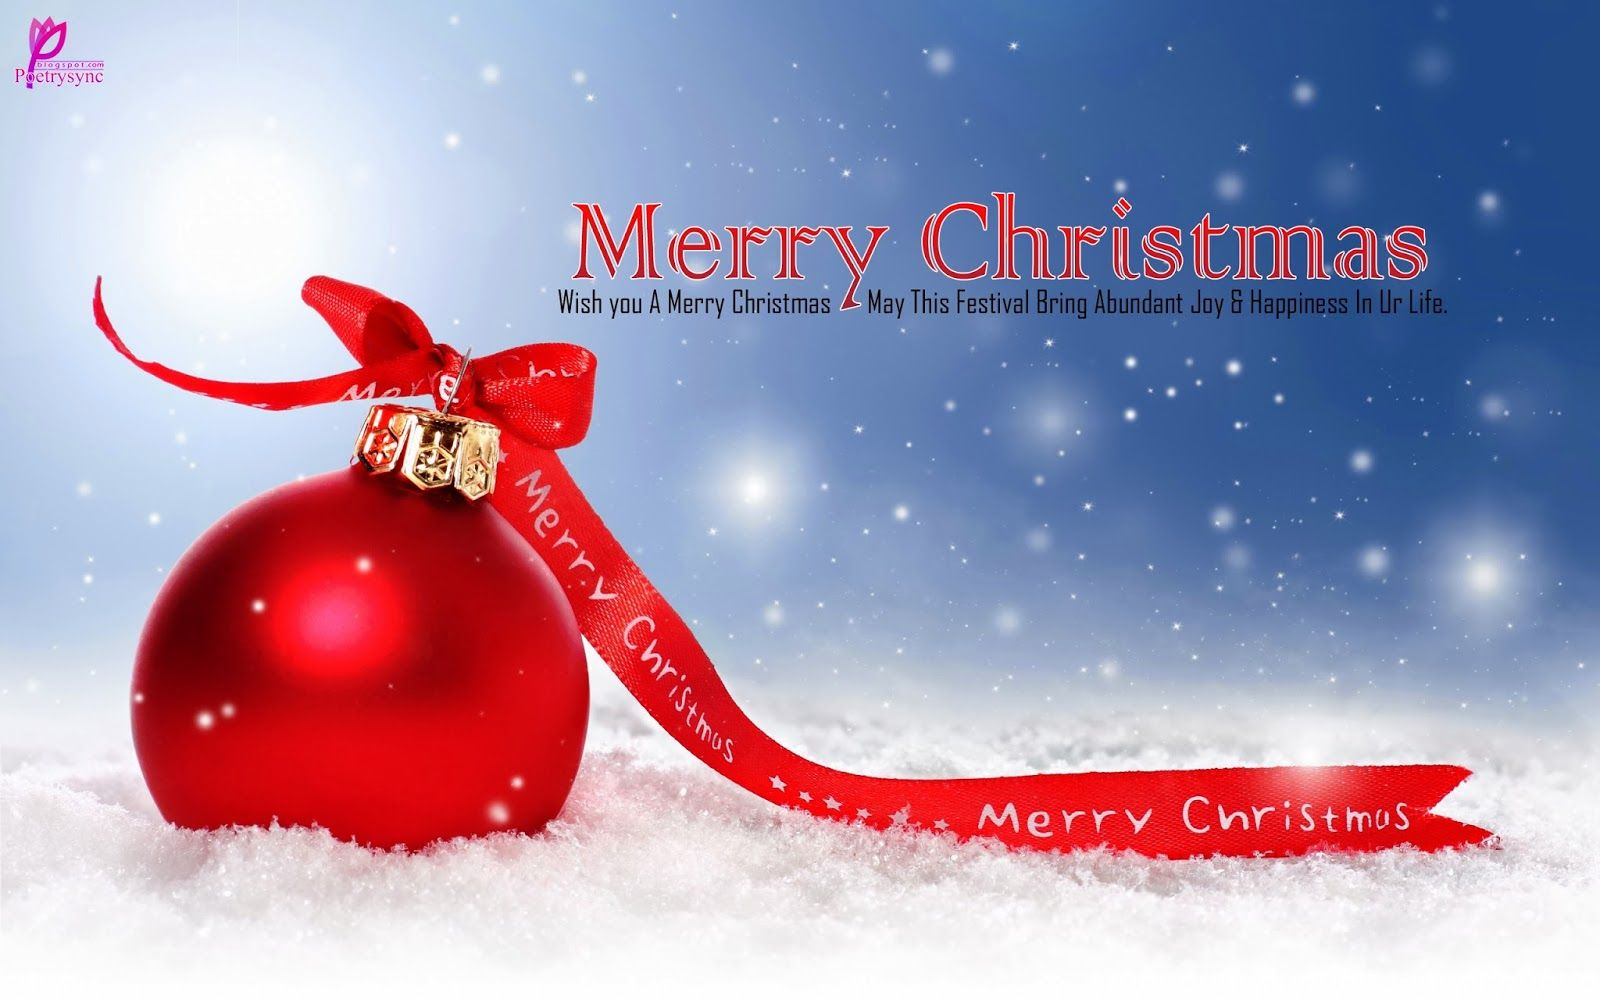 Christmas Cards Hd Wallpapers 9 Christmas Cards Hd Wallpapers